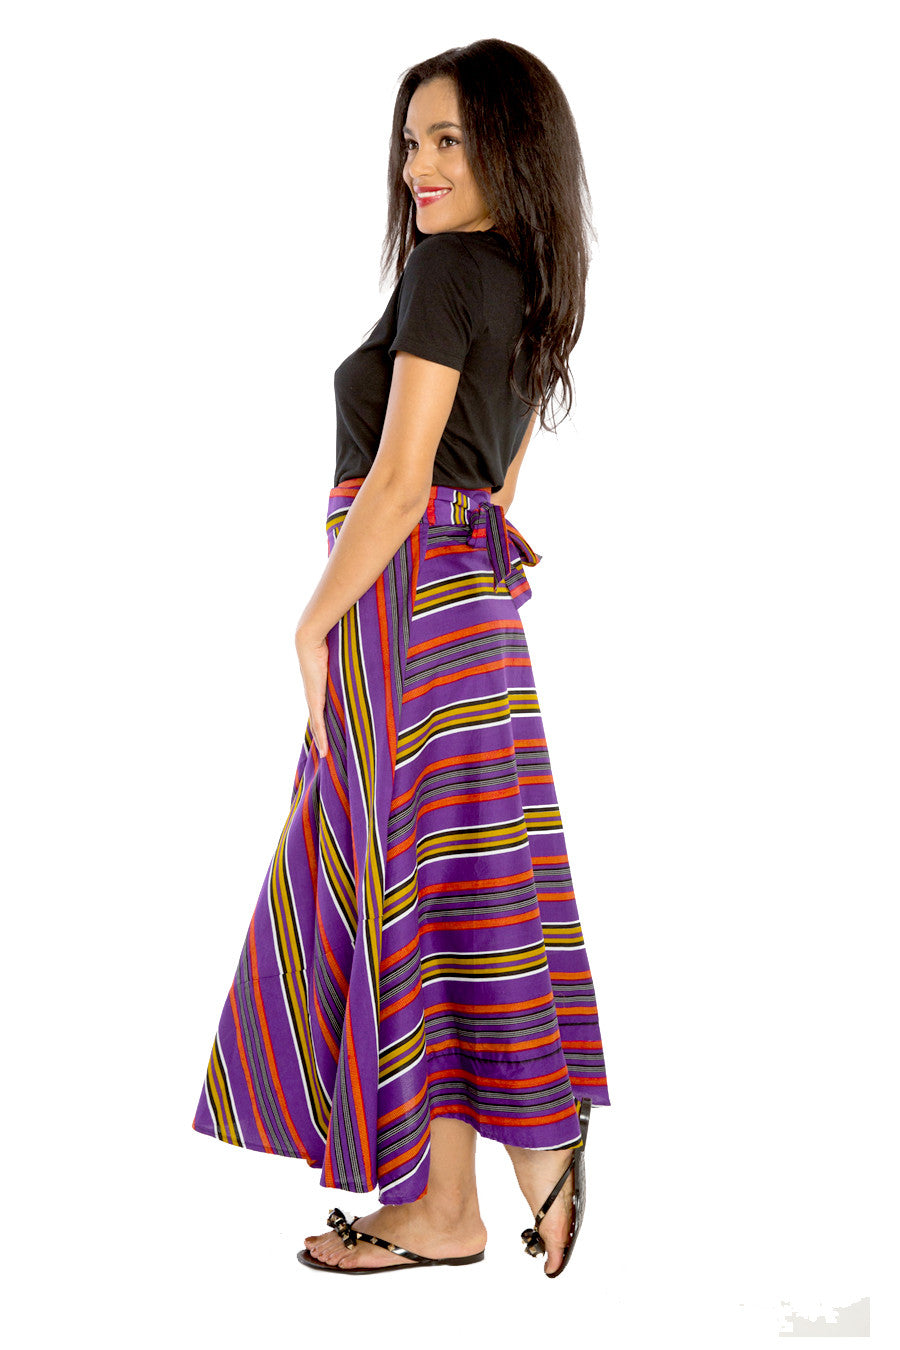 African Print Long Flowy Maxi Skirt - Wrapped in Print (Long)